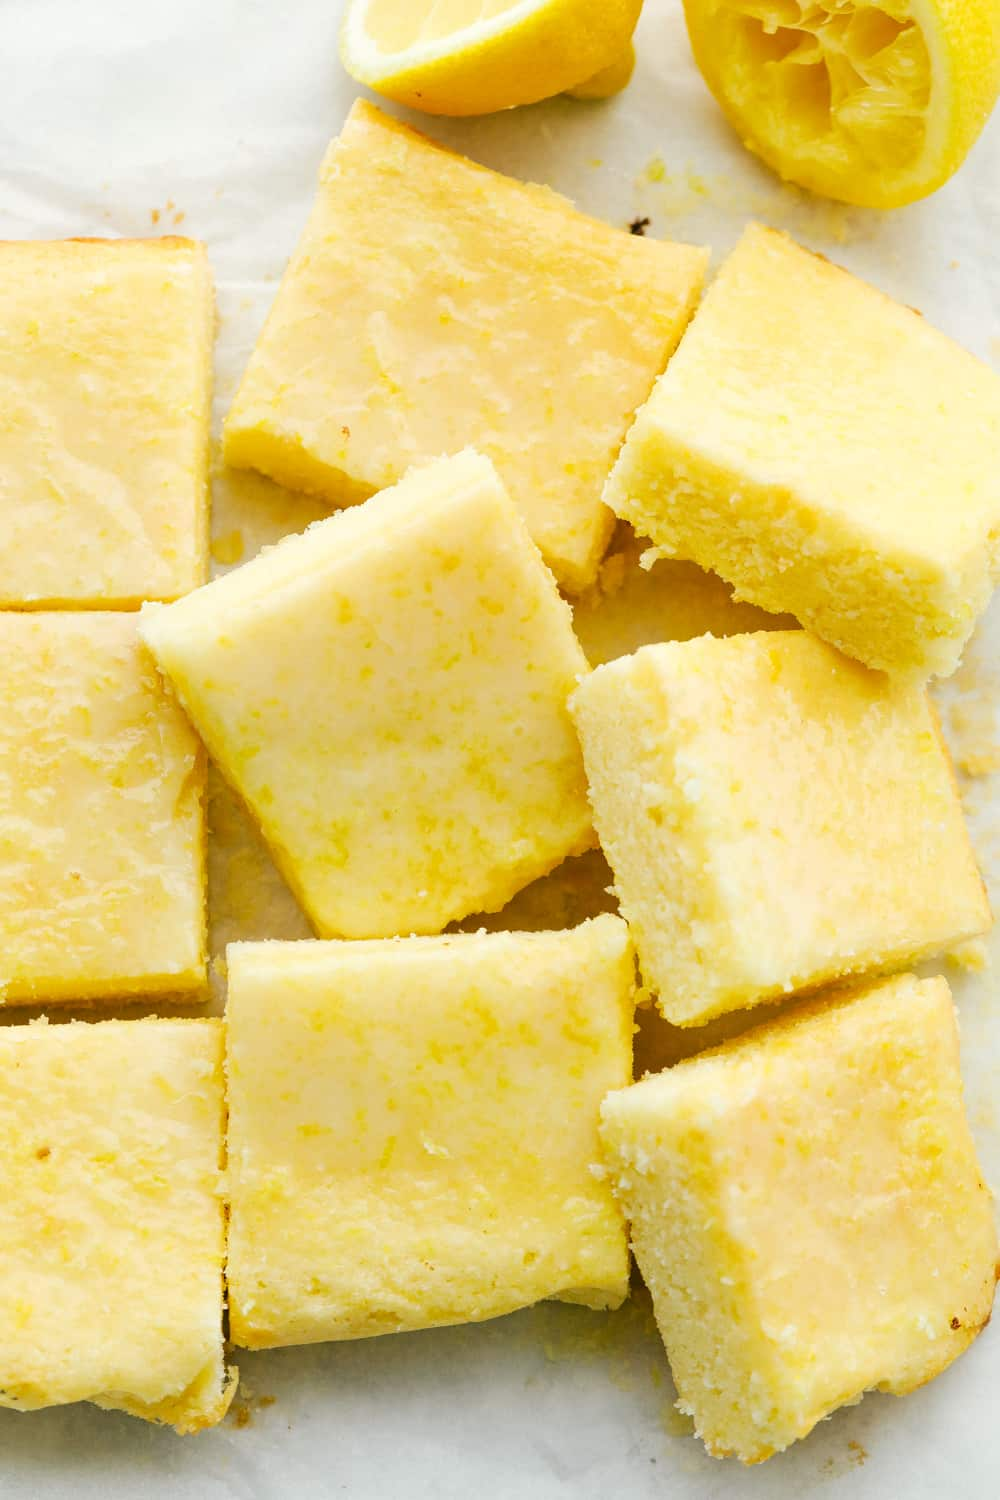 Lemon Brownies cut into squares ready to eat.